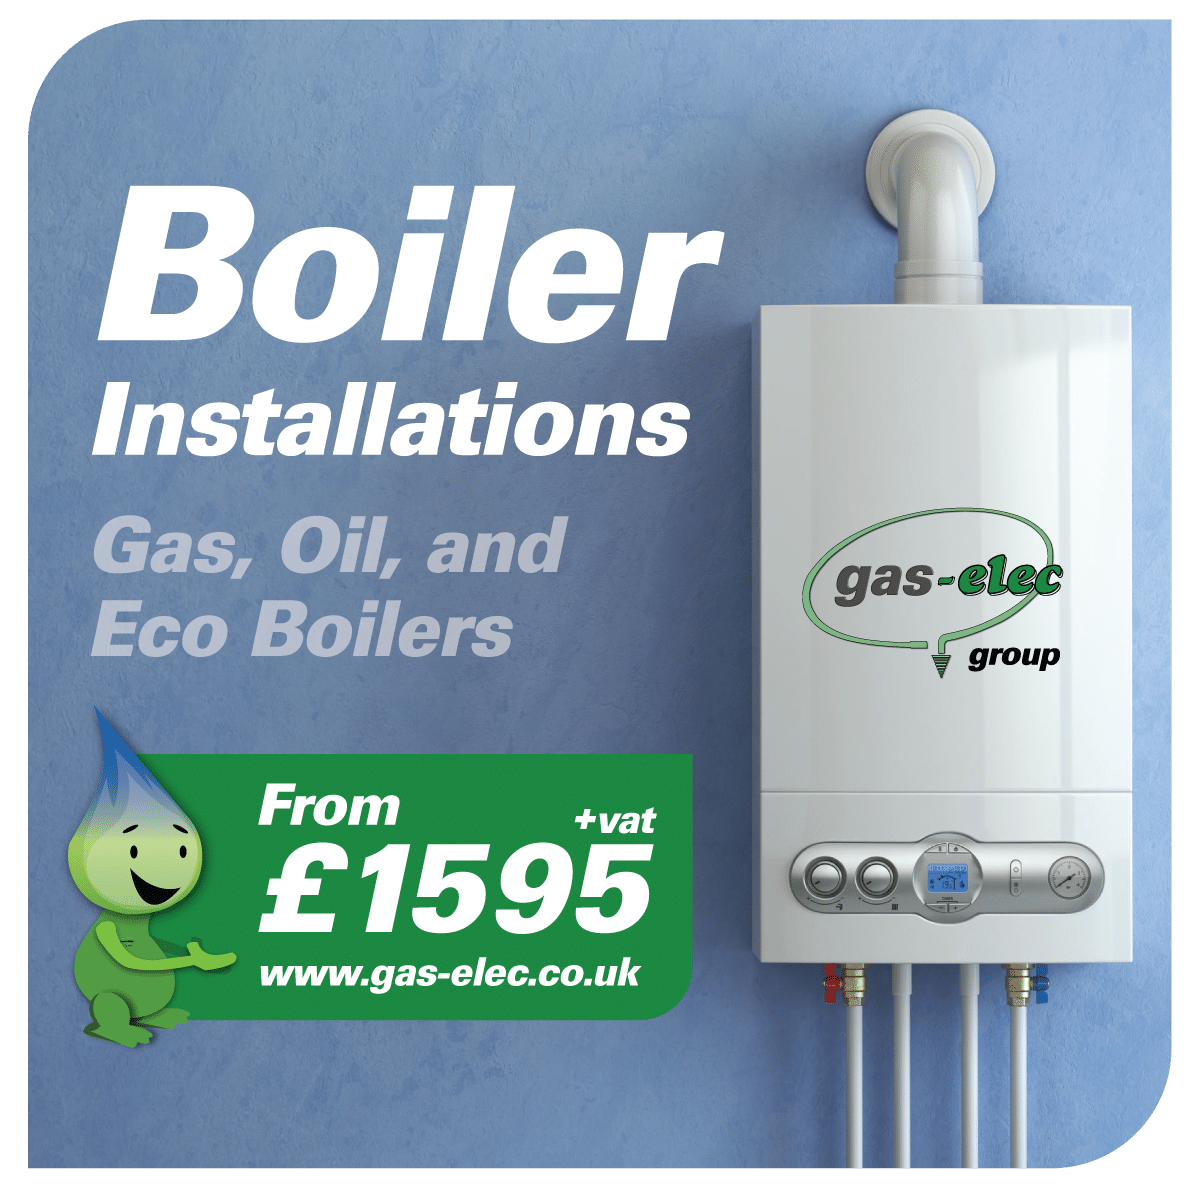 1595 for boiler installations